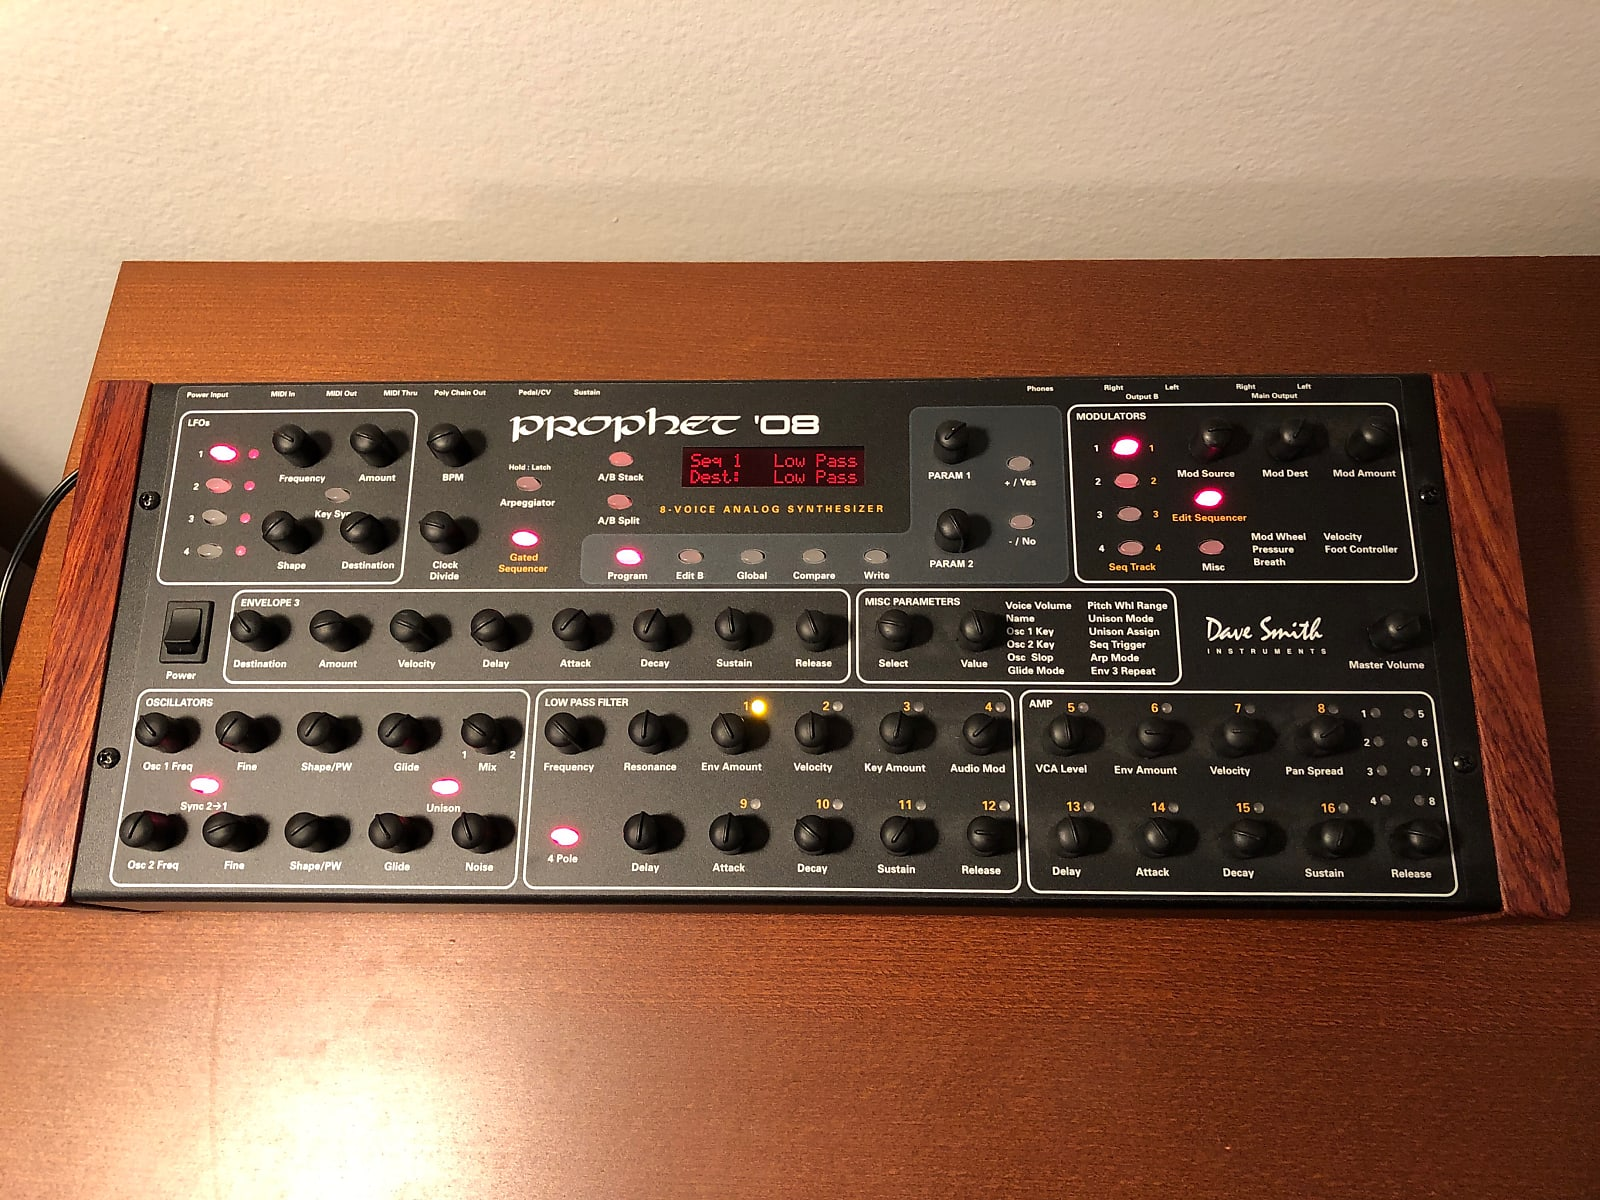 matrixsynth dave smith instruments prophet 39 08 pe synthesizer module wood cheeks rack ear. Black Bedroom Furniture Sets. Home Design Ideas